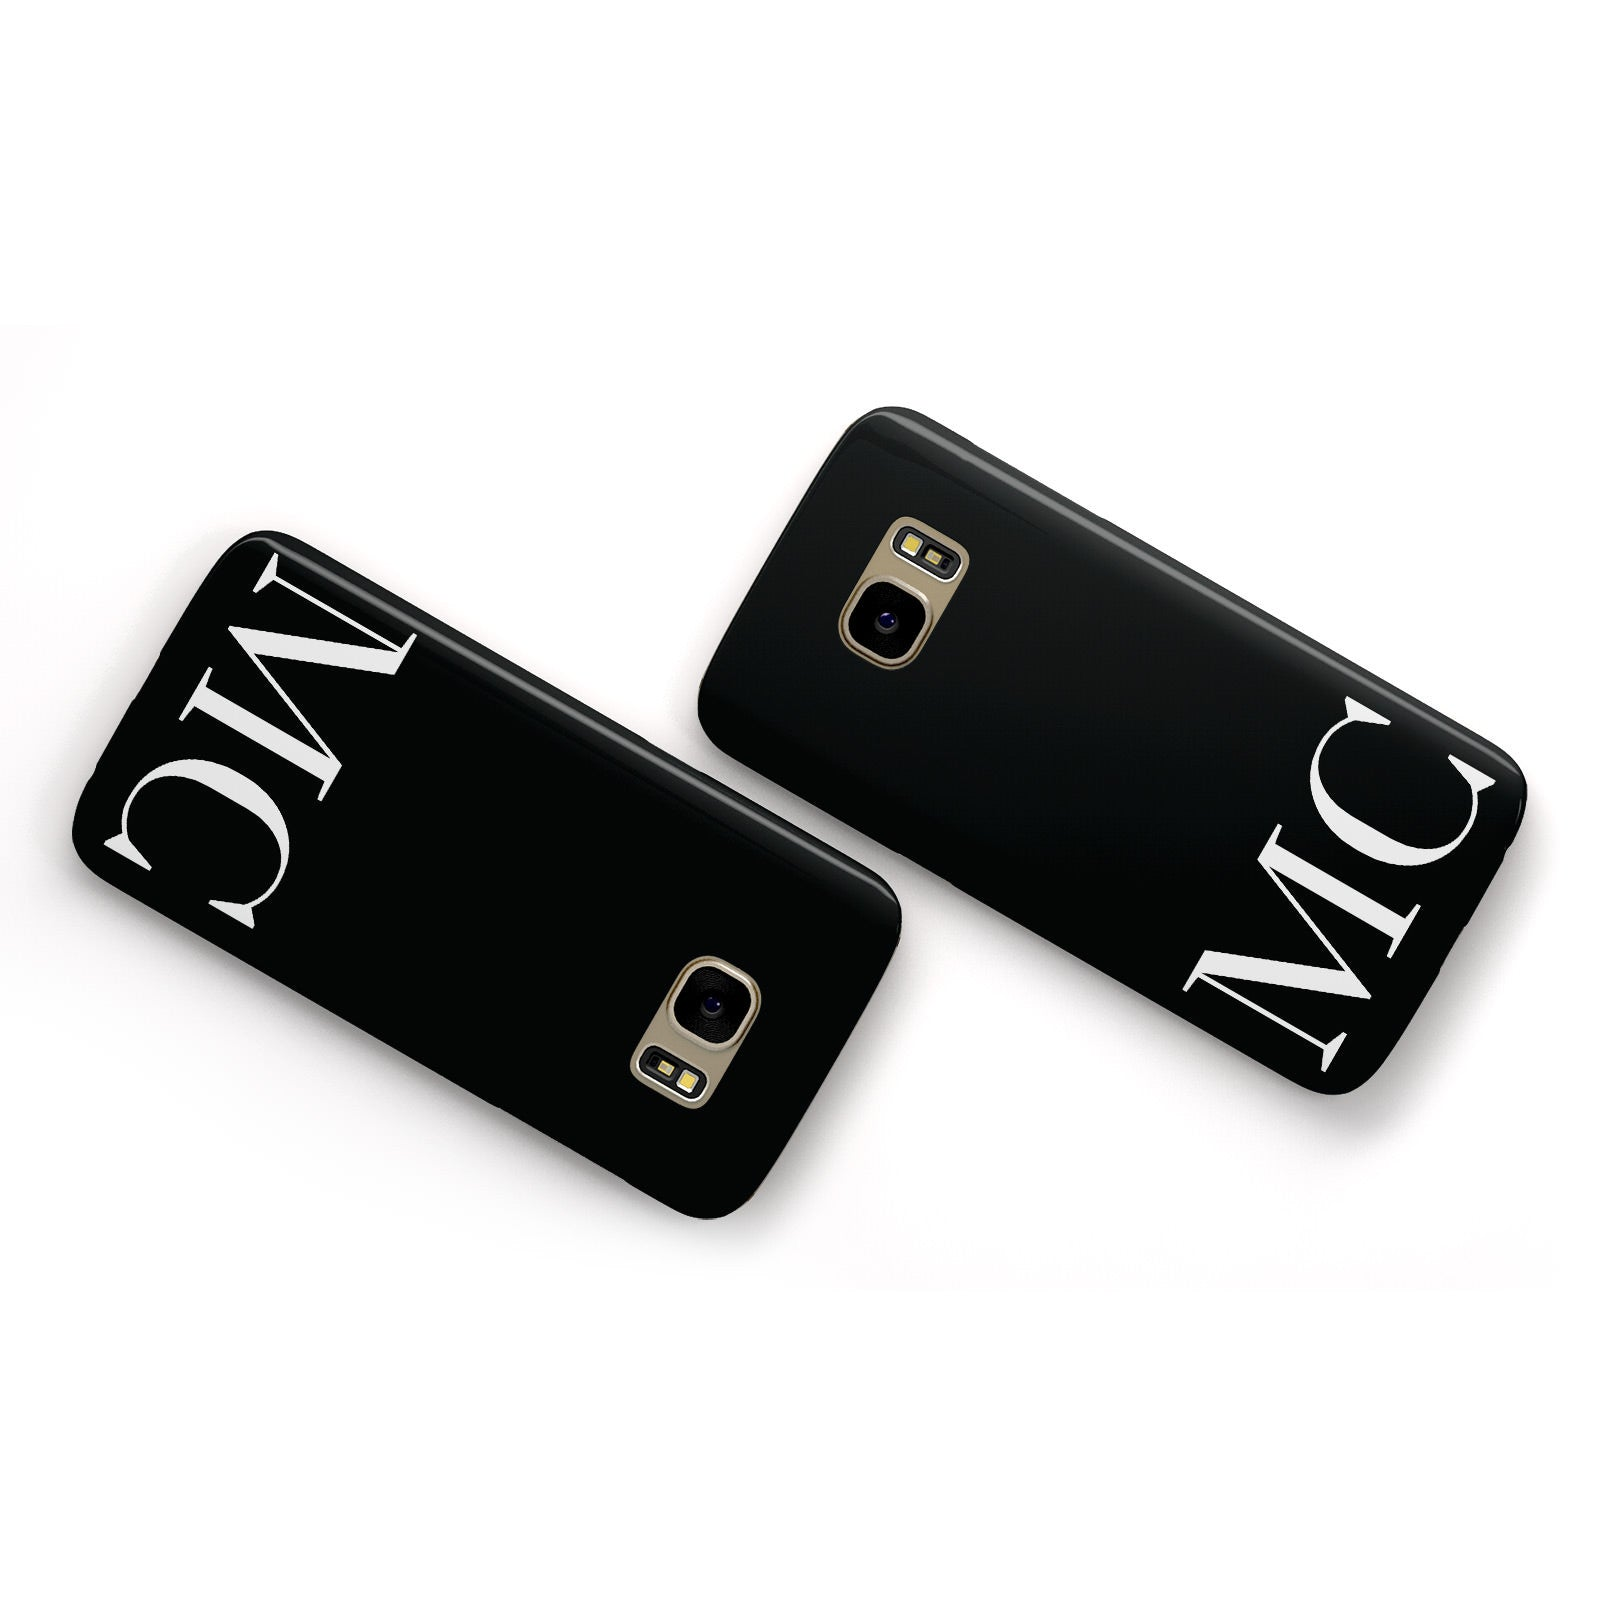 Initials Personalised 1 Samsung Galaxy Case Flat Overview